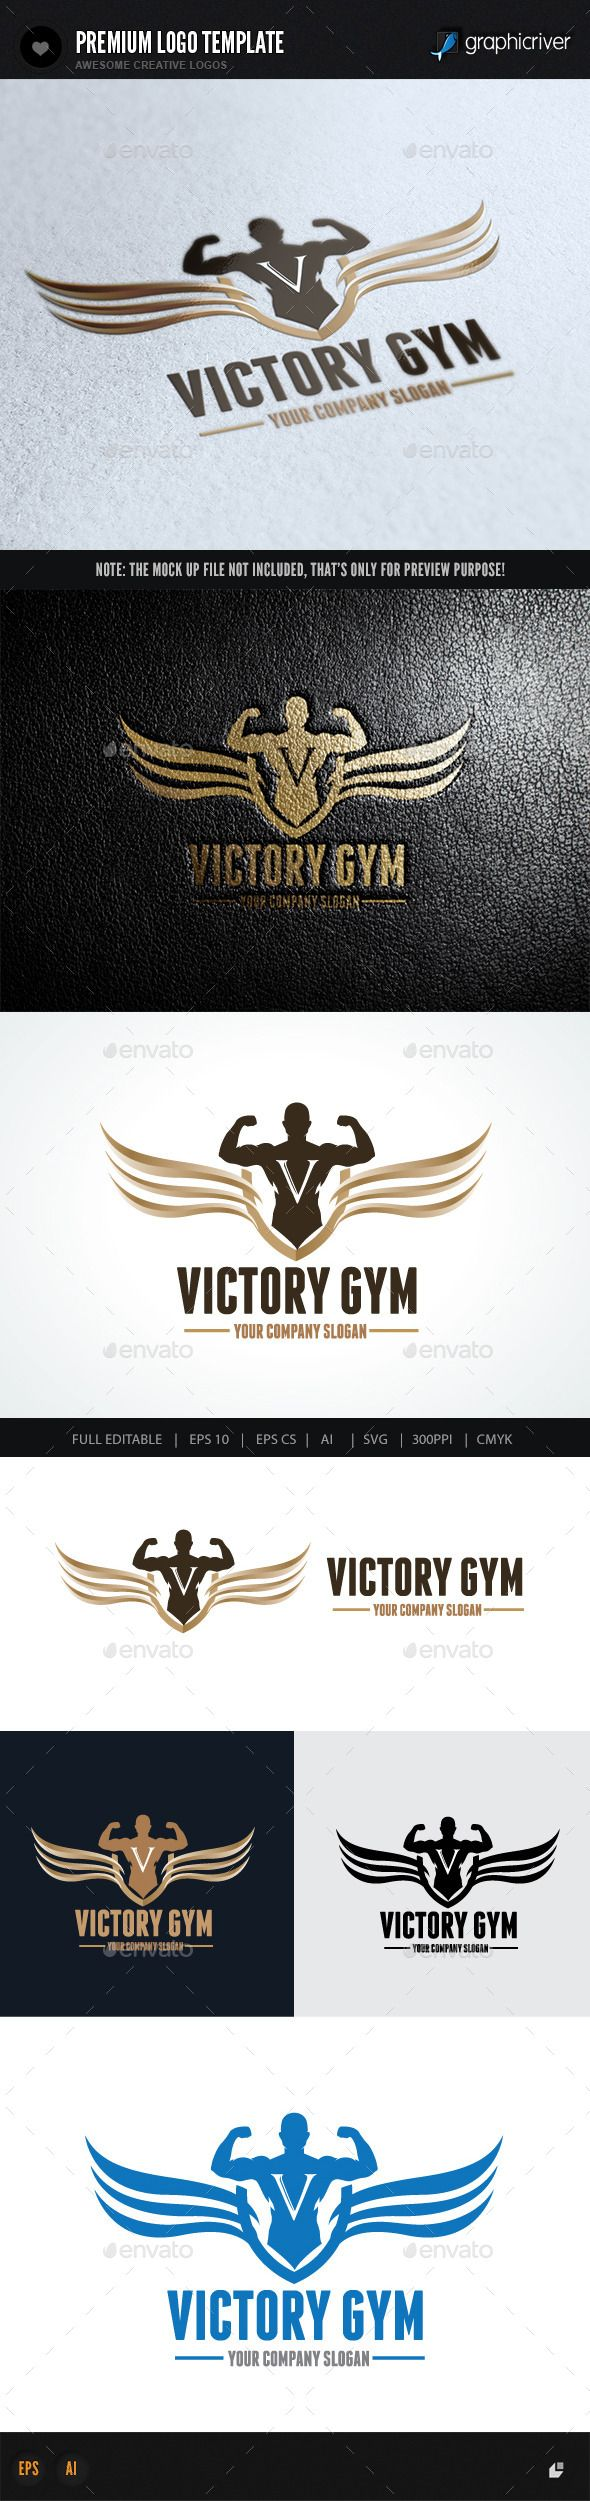 Victory Gym Logo Template #design Download: http://graphicriver.net/item/victory-gym/10079879?ref=ksioks